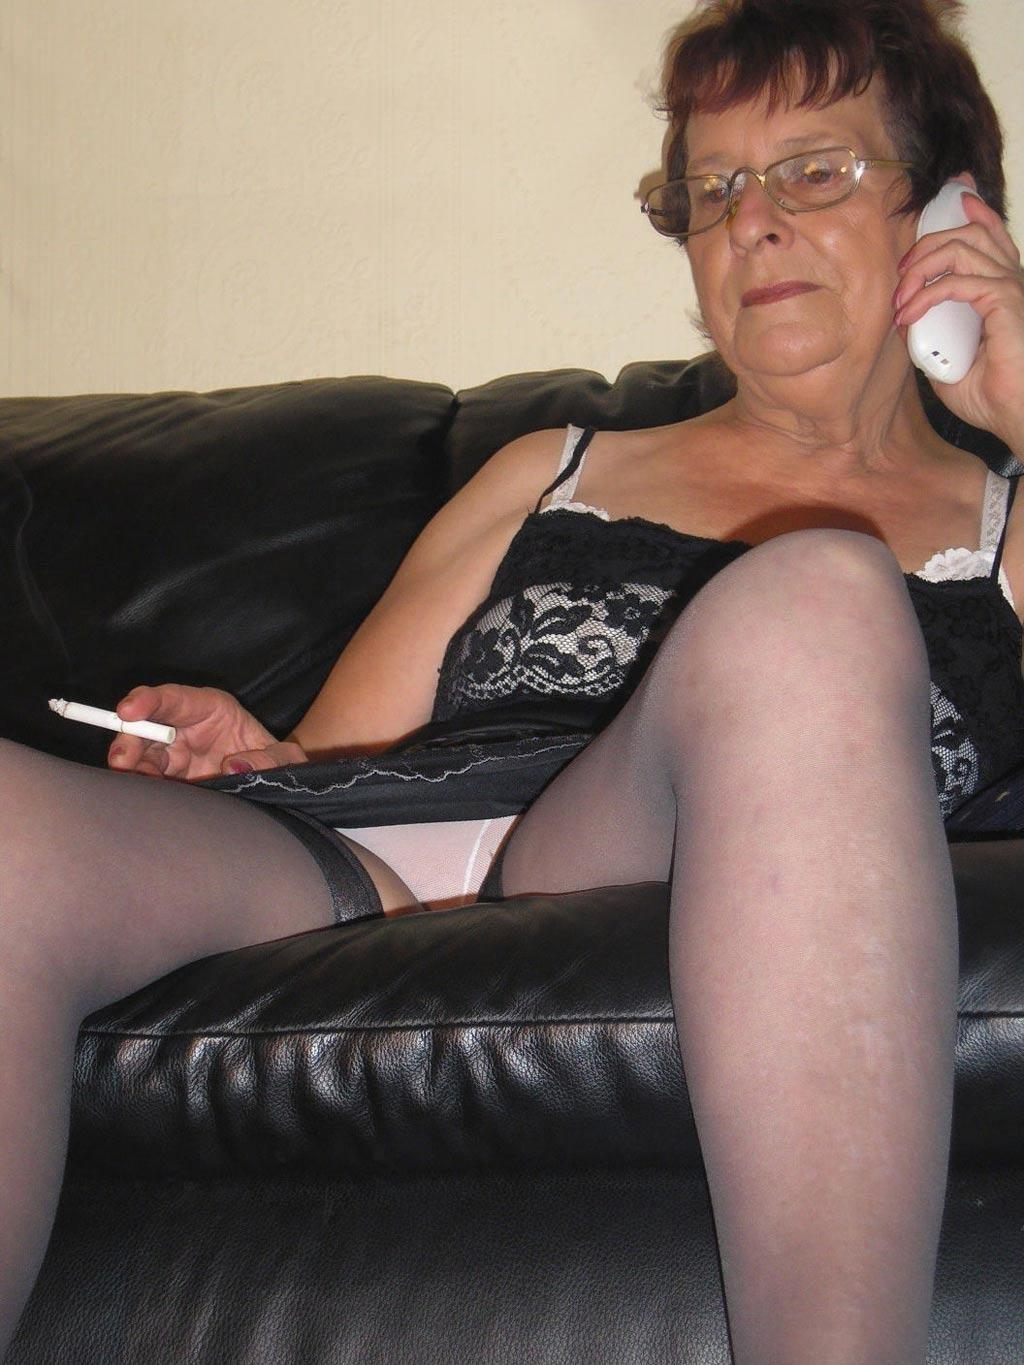 Old Granny Porn Films free pics old mature granny . hot nude. comments: 4